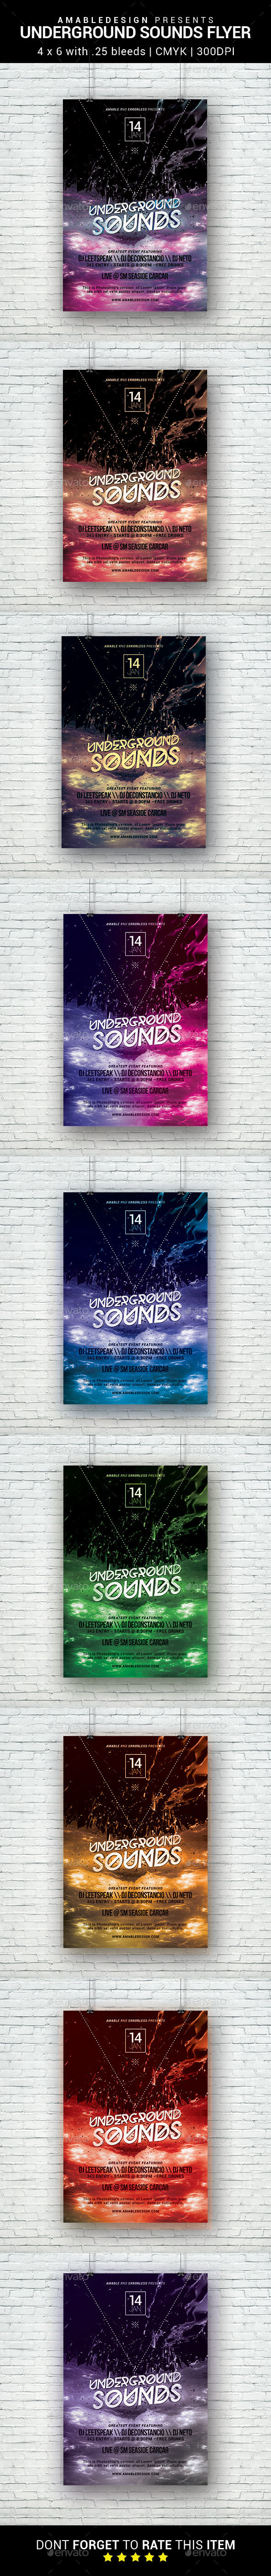 Underground Sounds Flyer - Clubs & Parties Events